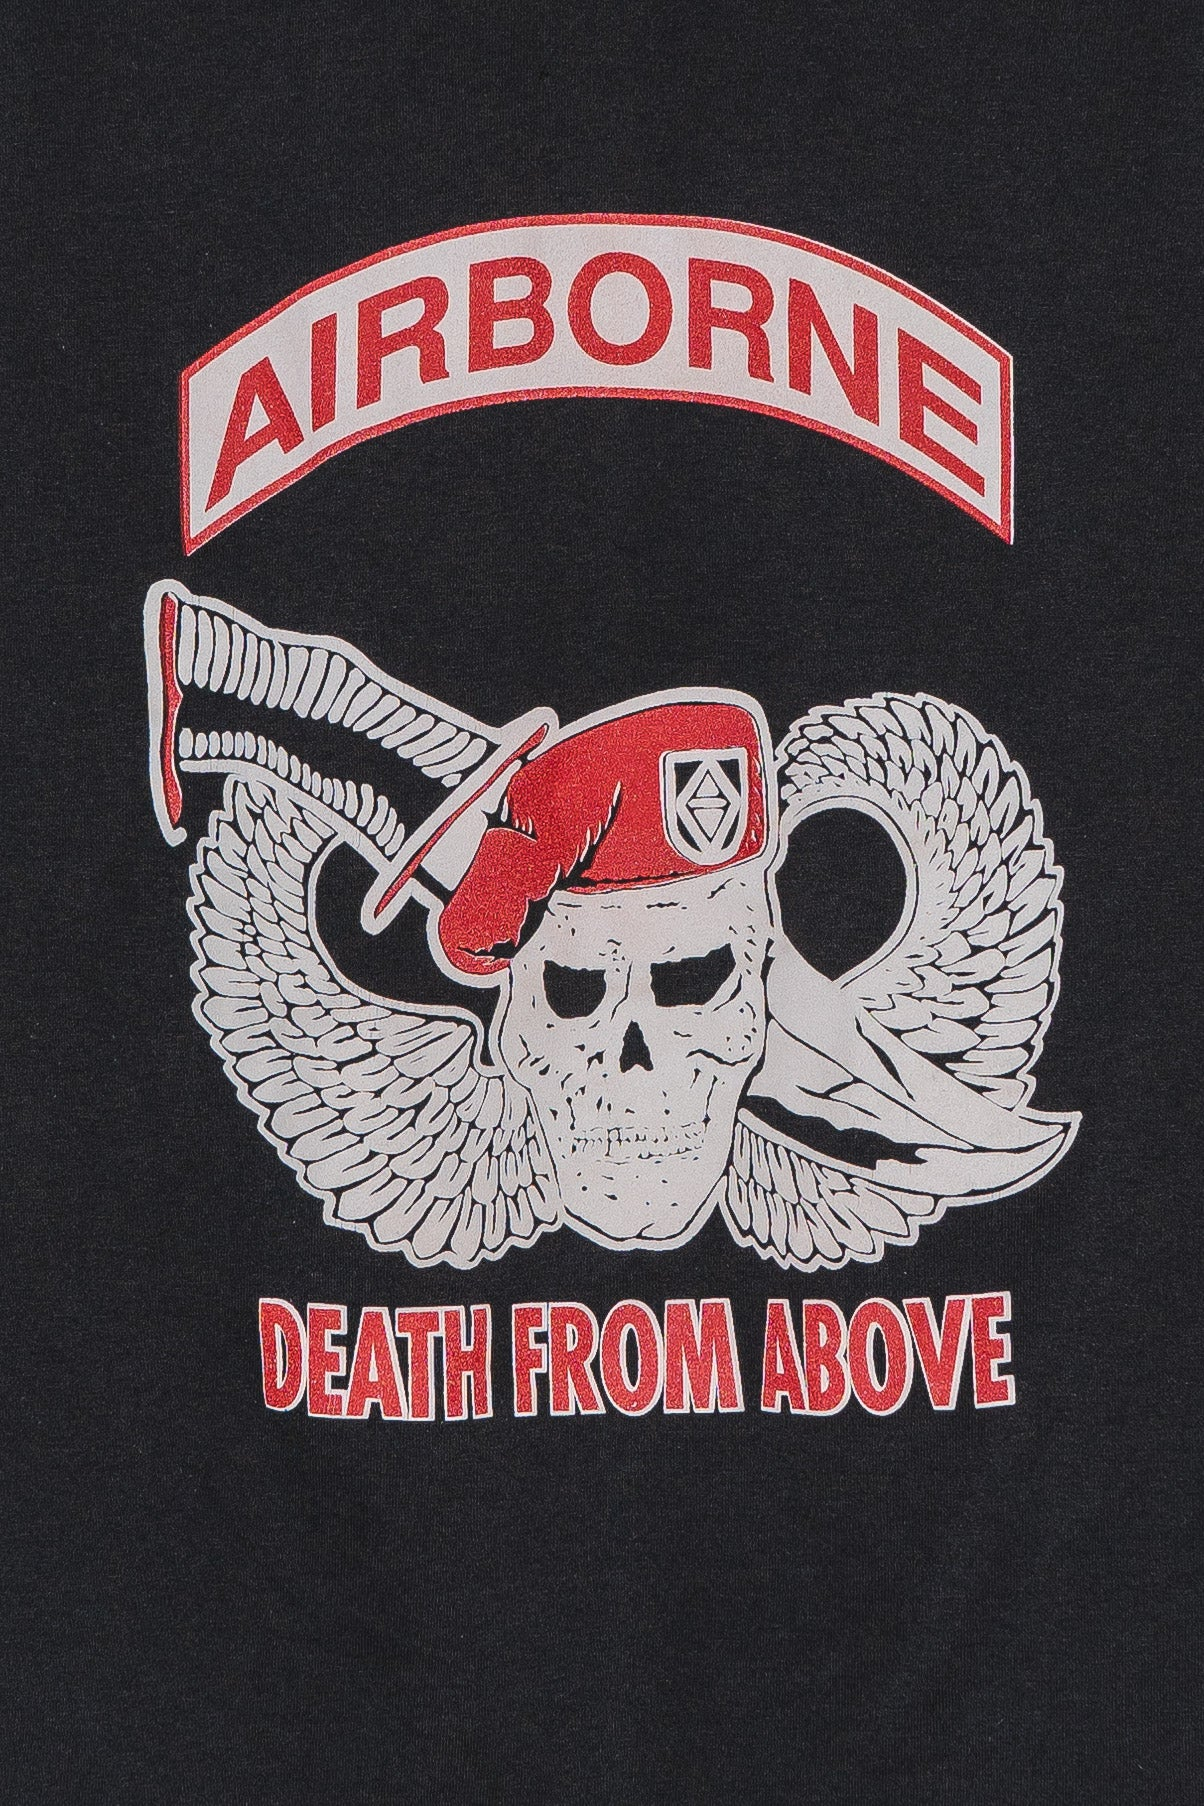 Airborne Death From Above Tee - XXS